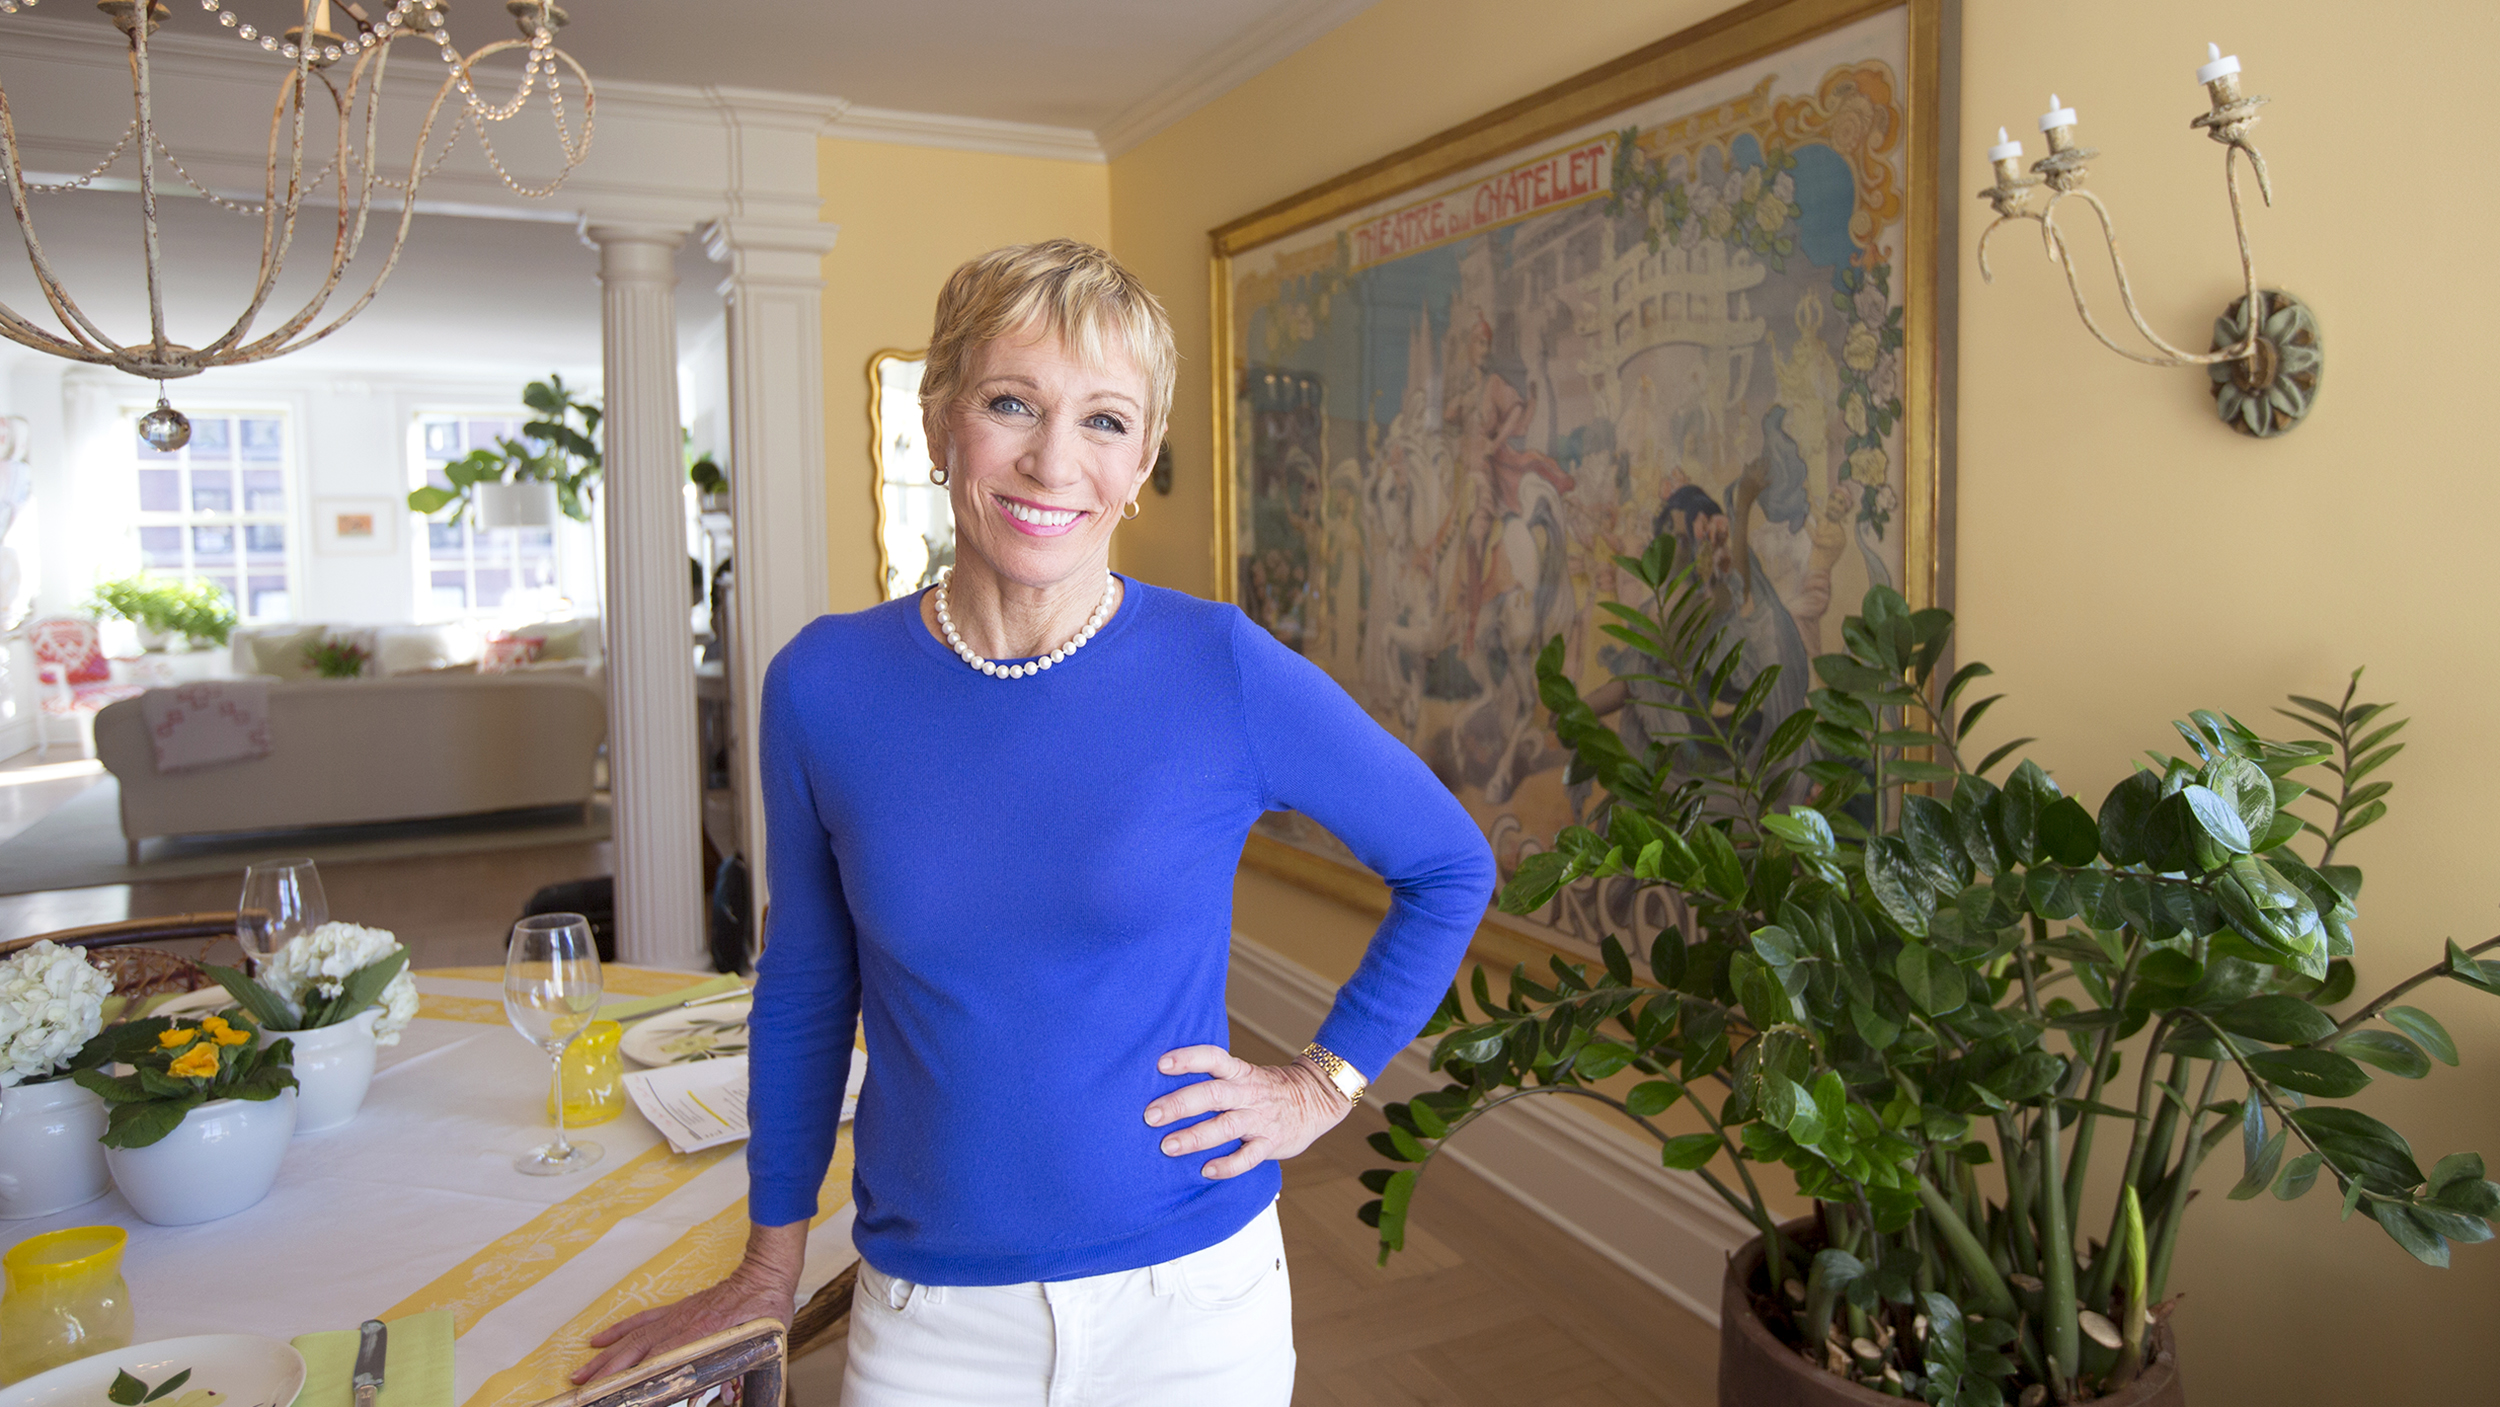 At home with today barbara corcoran welcomes you to her for Barbara house